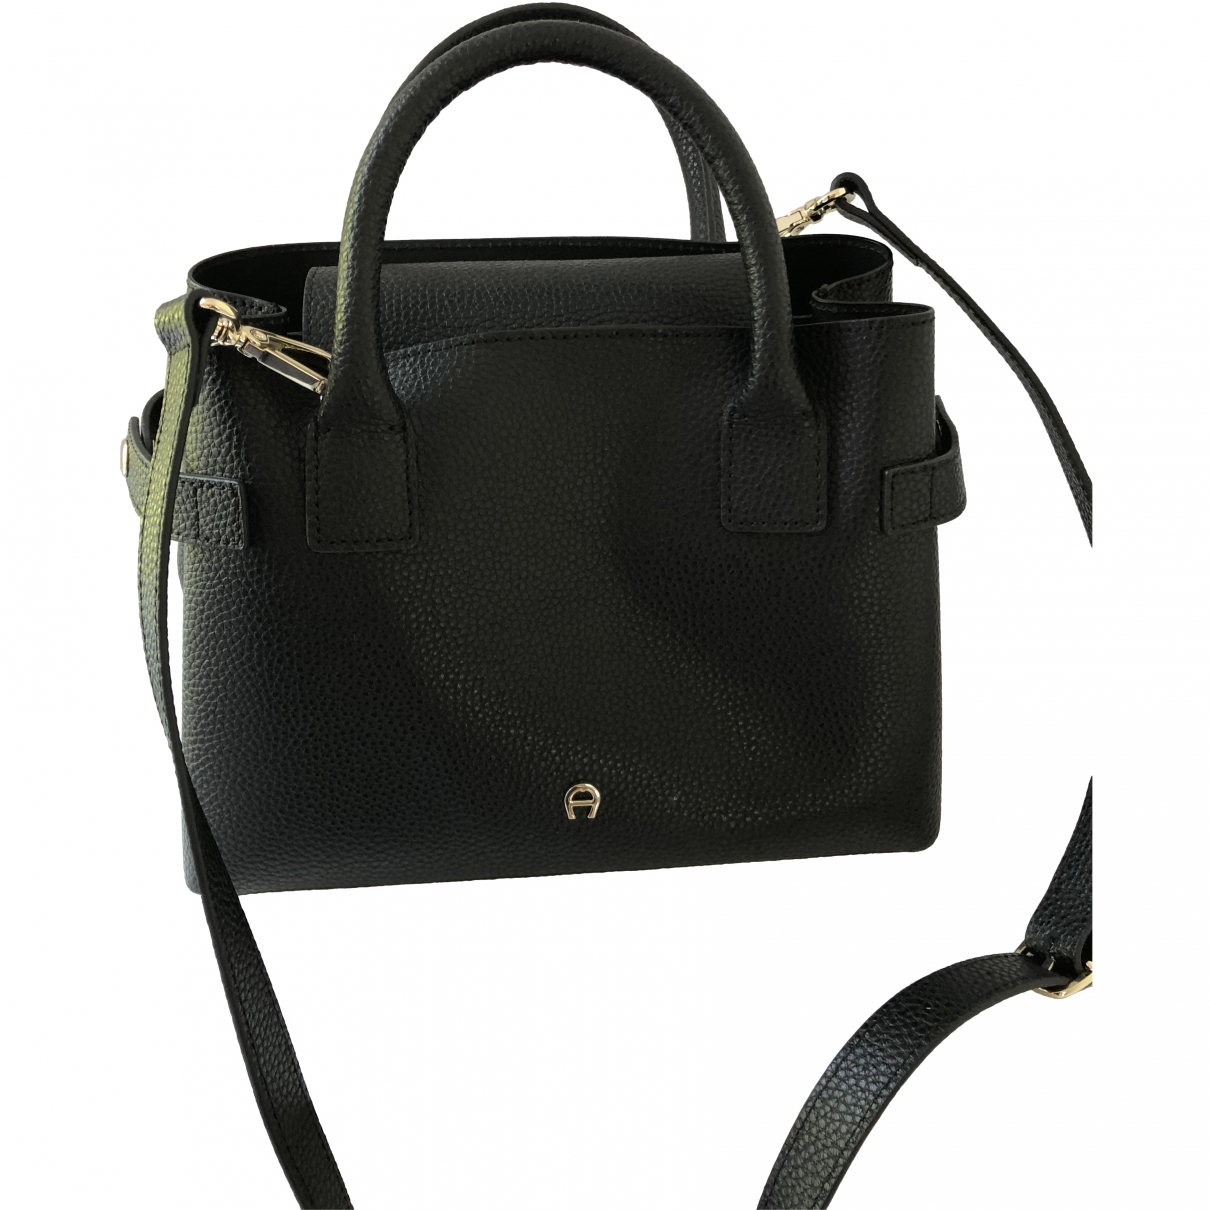 Aigner \N Black Leather handbag for Women \N